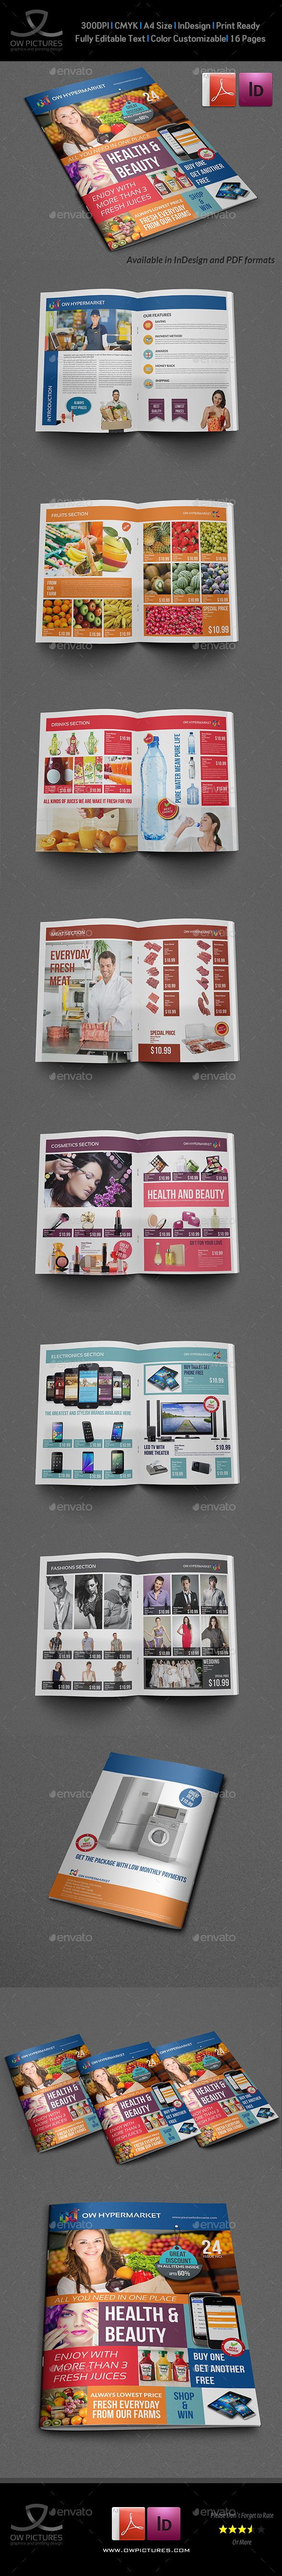 Supermarket Products Catalog Brochure Template | Material oficina ...